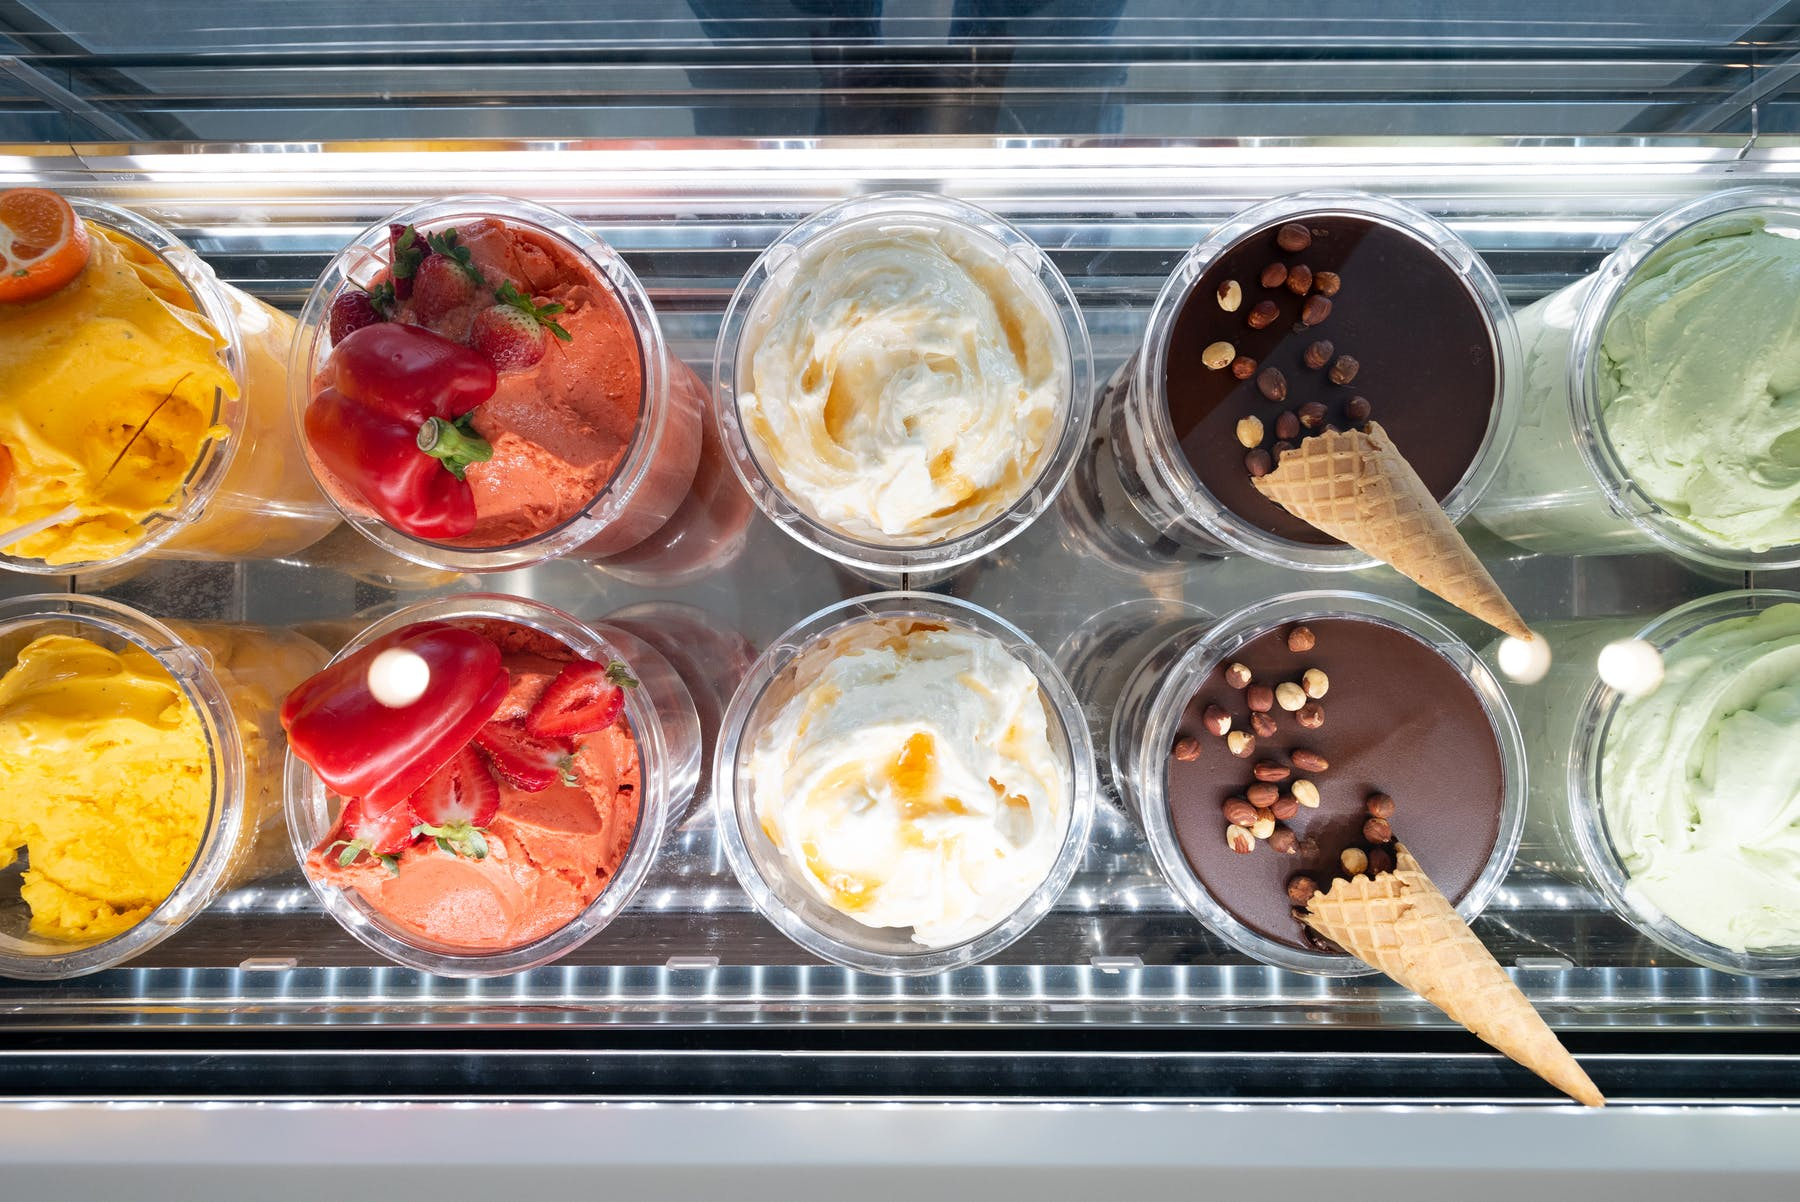 a tray topped with desserts